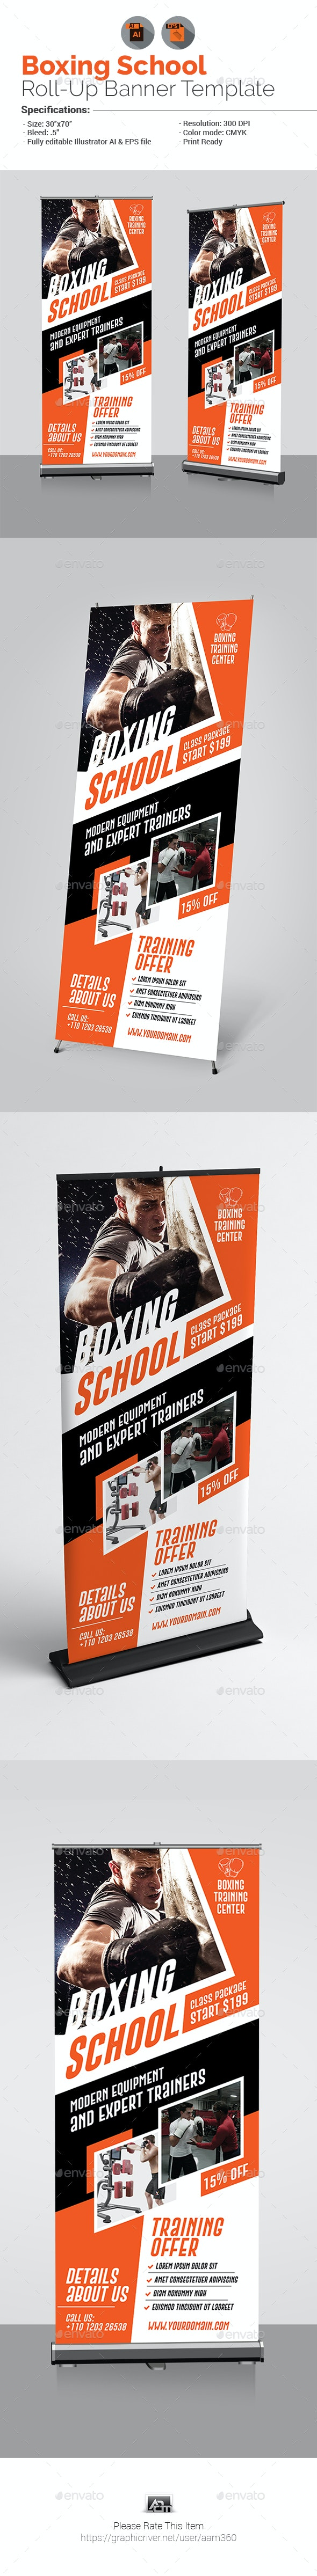 Boxing School Roll-Up Banner - Signage Print Templates